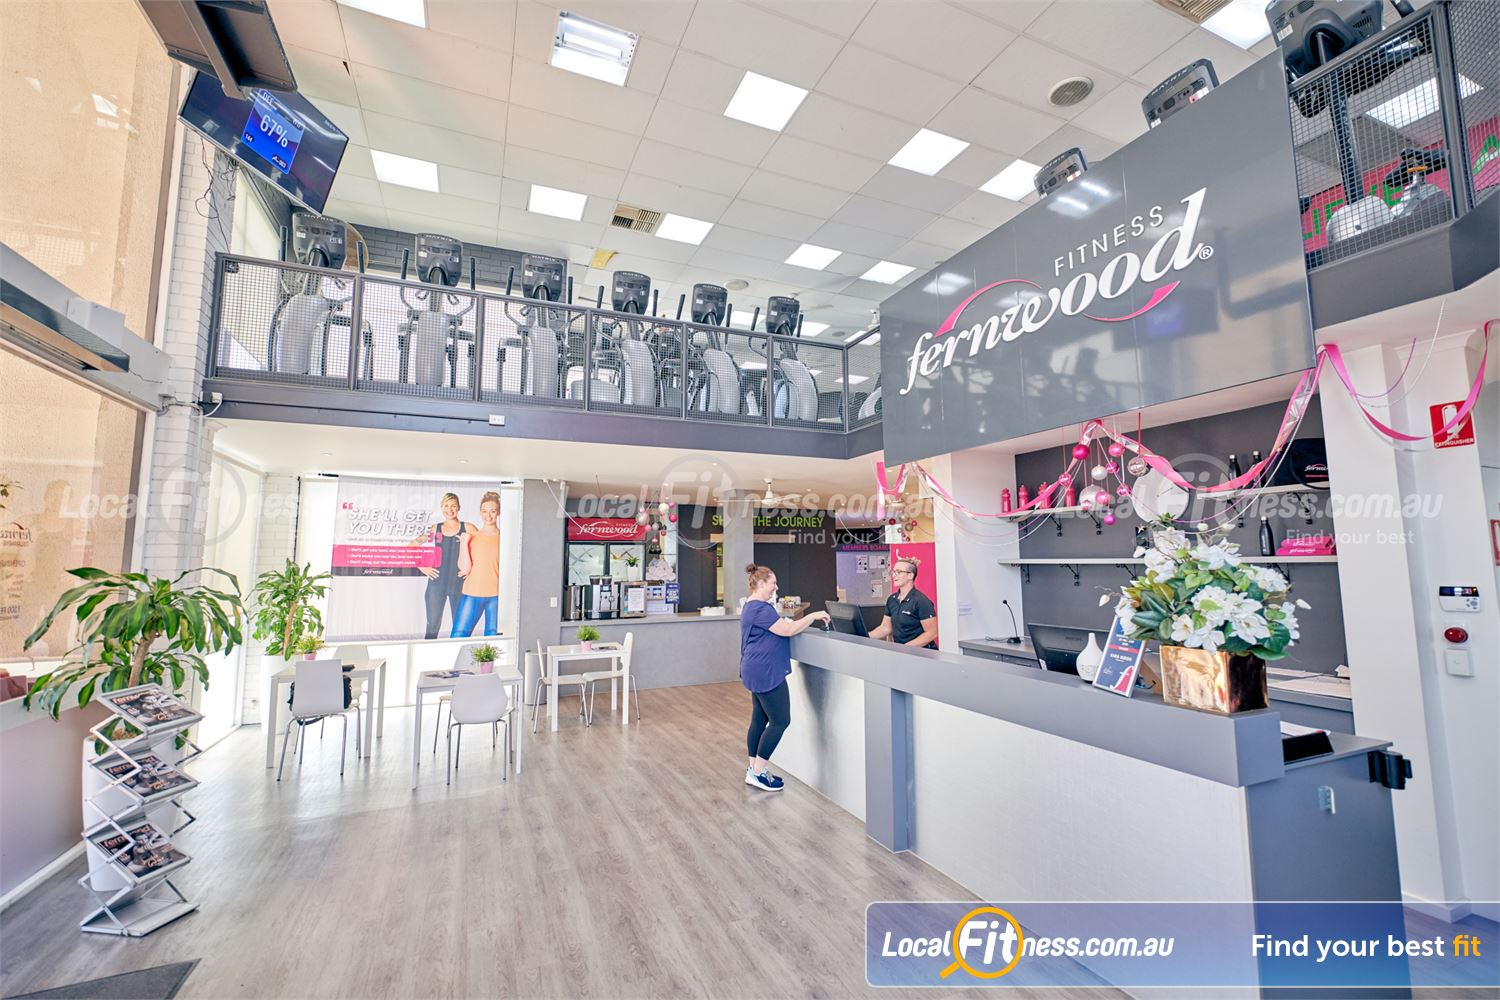 Fernwood Fitness Tullamarine Welcome to Fernwood Fitness Tullamarine women's gym.